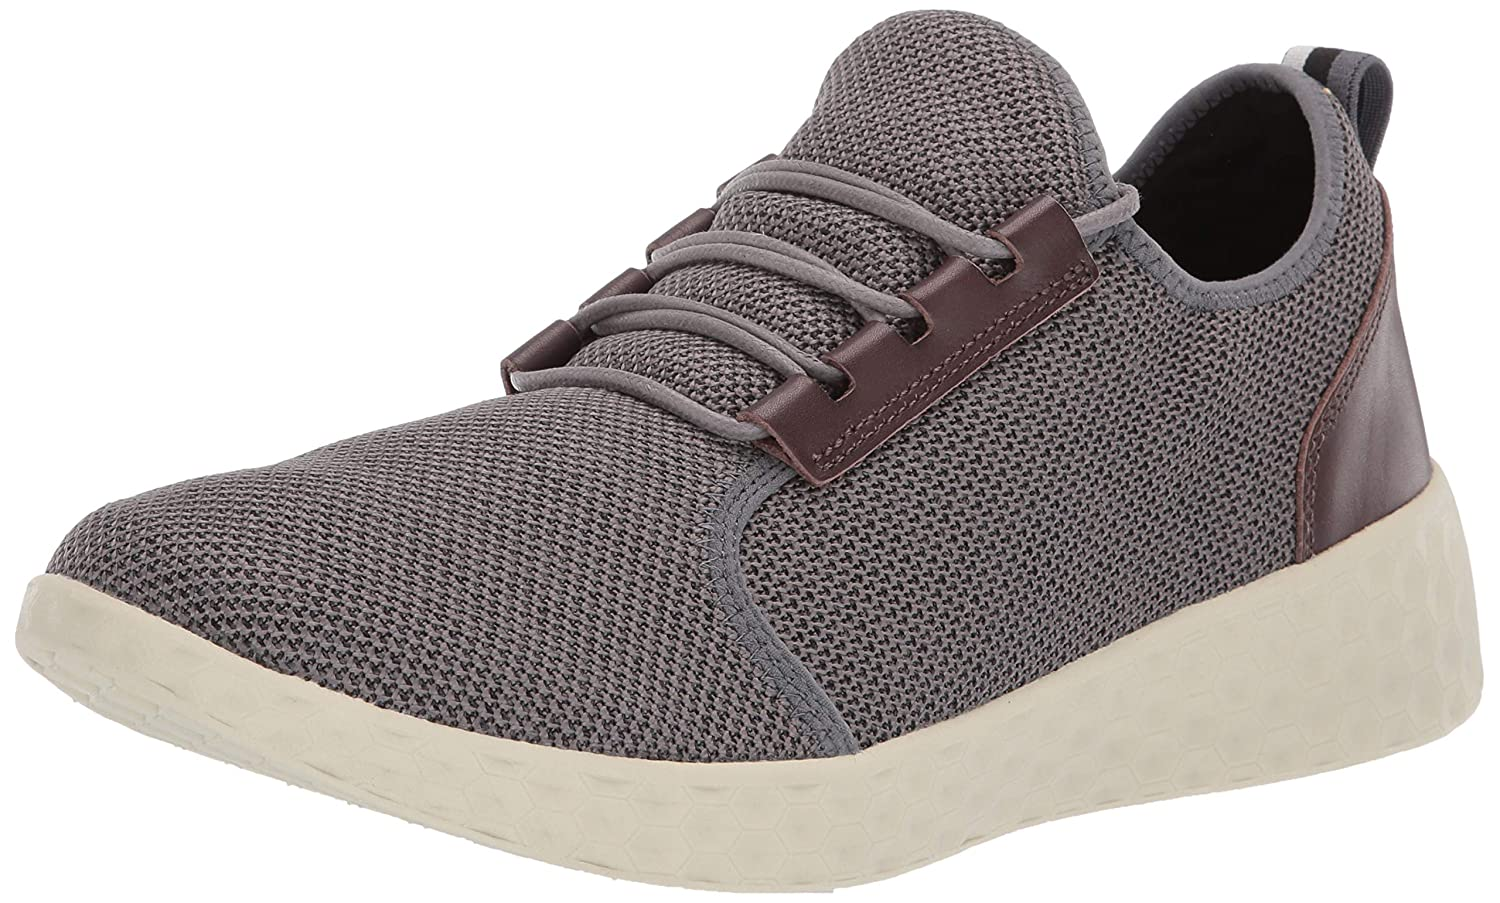 71e8887a583a8 Dr. Scholl's Shoes Men's Revive Sneaker, Grey eco Knit, 11 M US